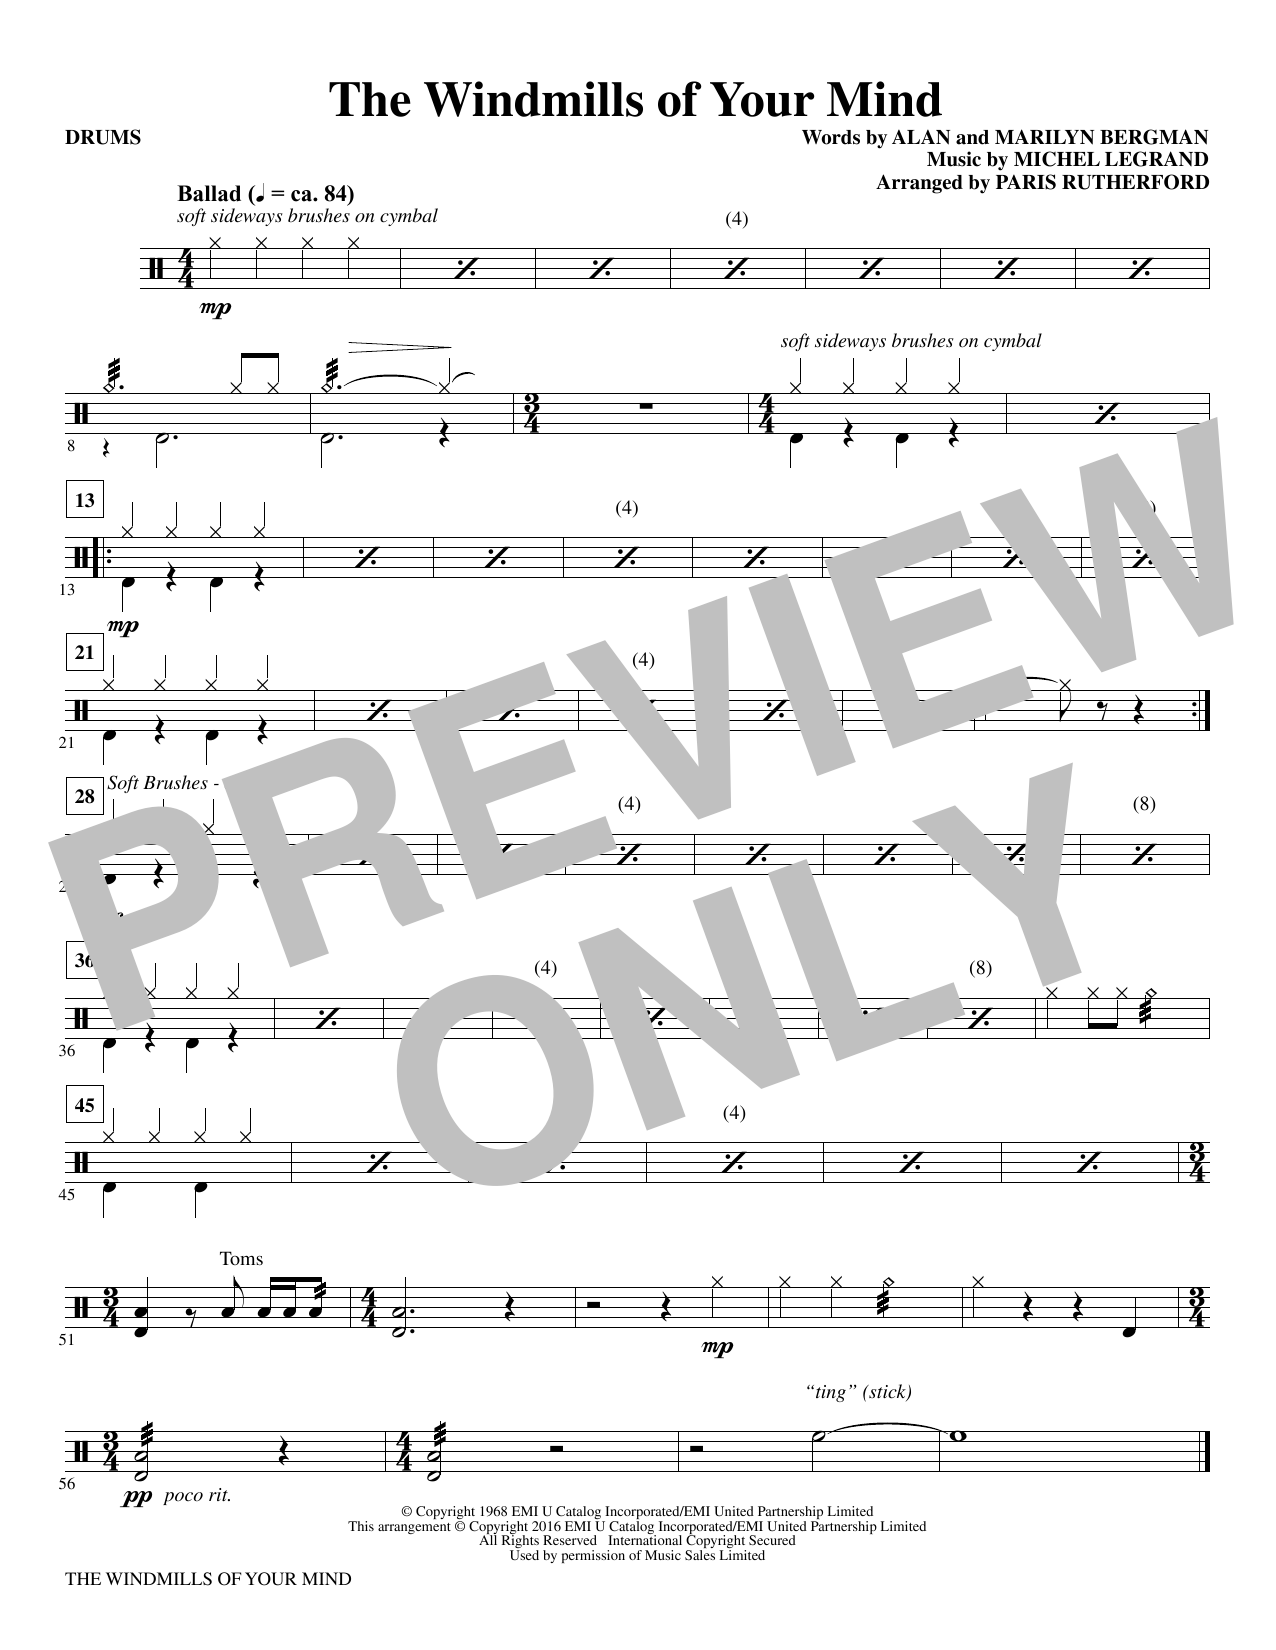 The Windmills of Your Mind - Drums Sheet Music